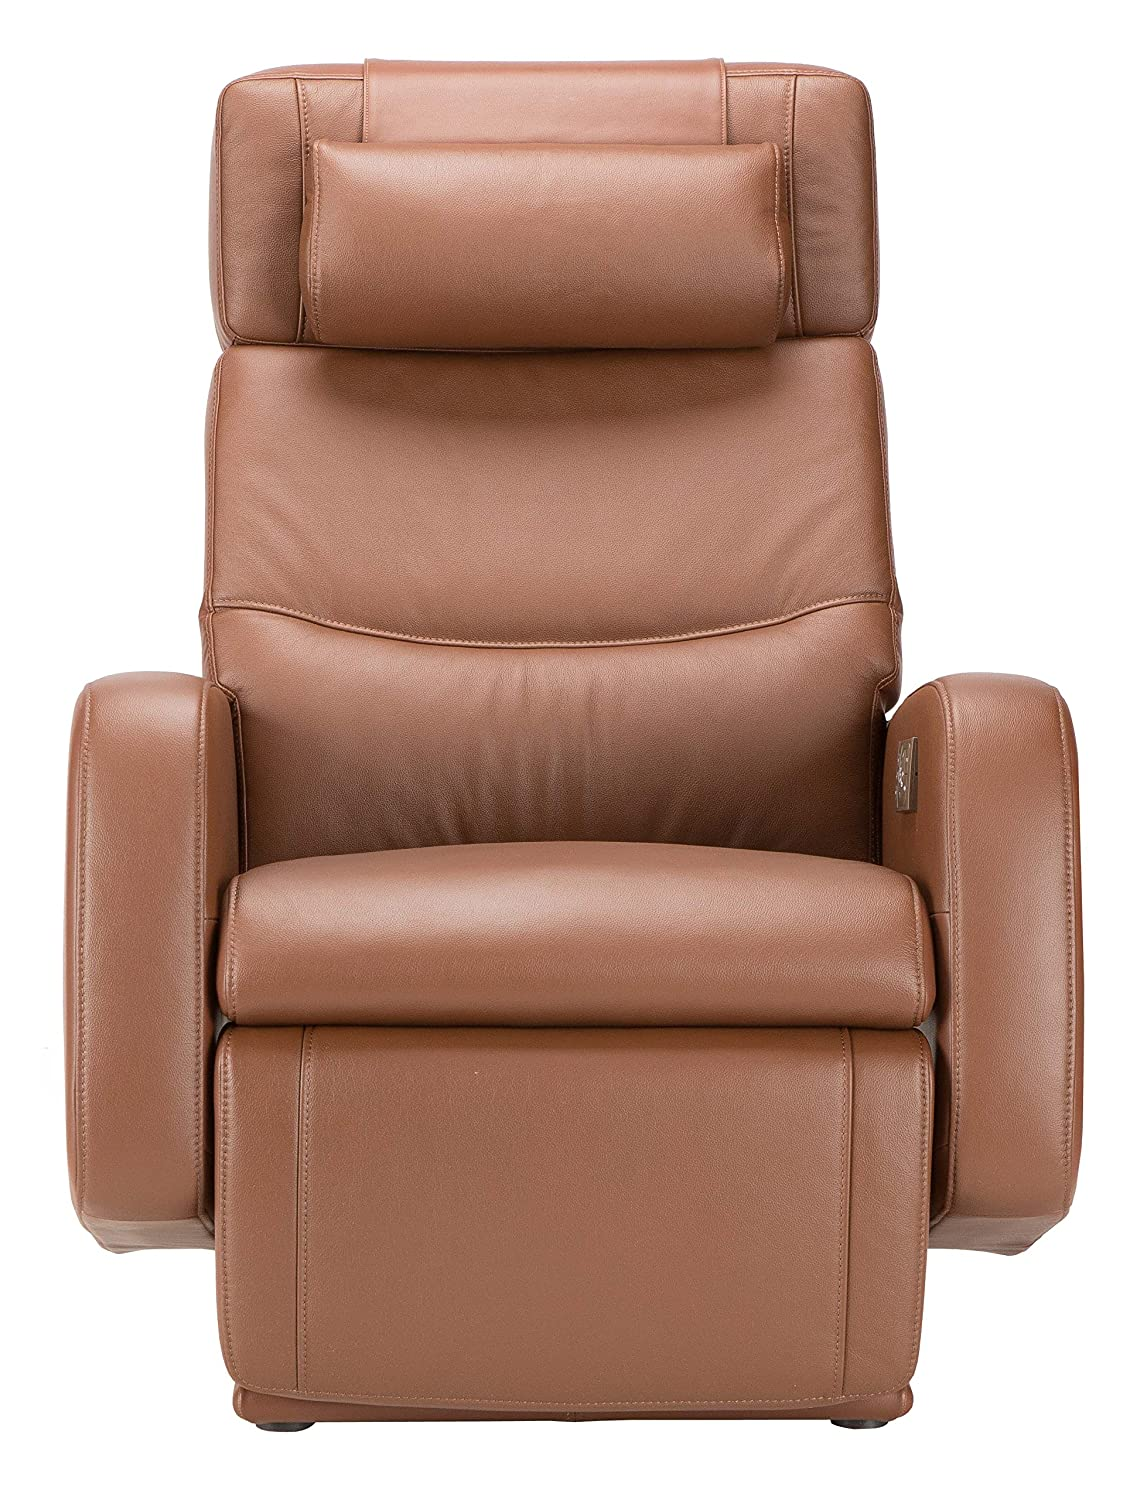 Amazon.com Human Touch Perfect Chair Zero-Gravity  PC-8500  Fully Upholstered 100% Leather PRO Recliner Barista Kitchen u0026 Dining  sc 1 st  Amazon.com & Amazon.com: Human Touch Perfect Chair Zero-Gravity